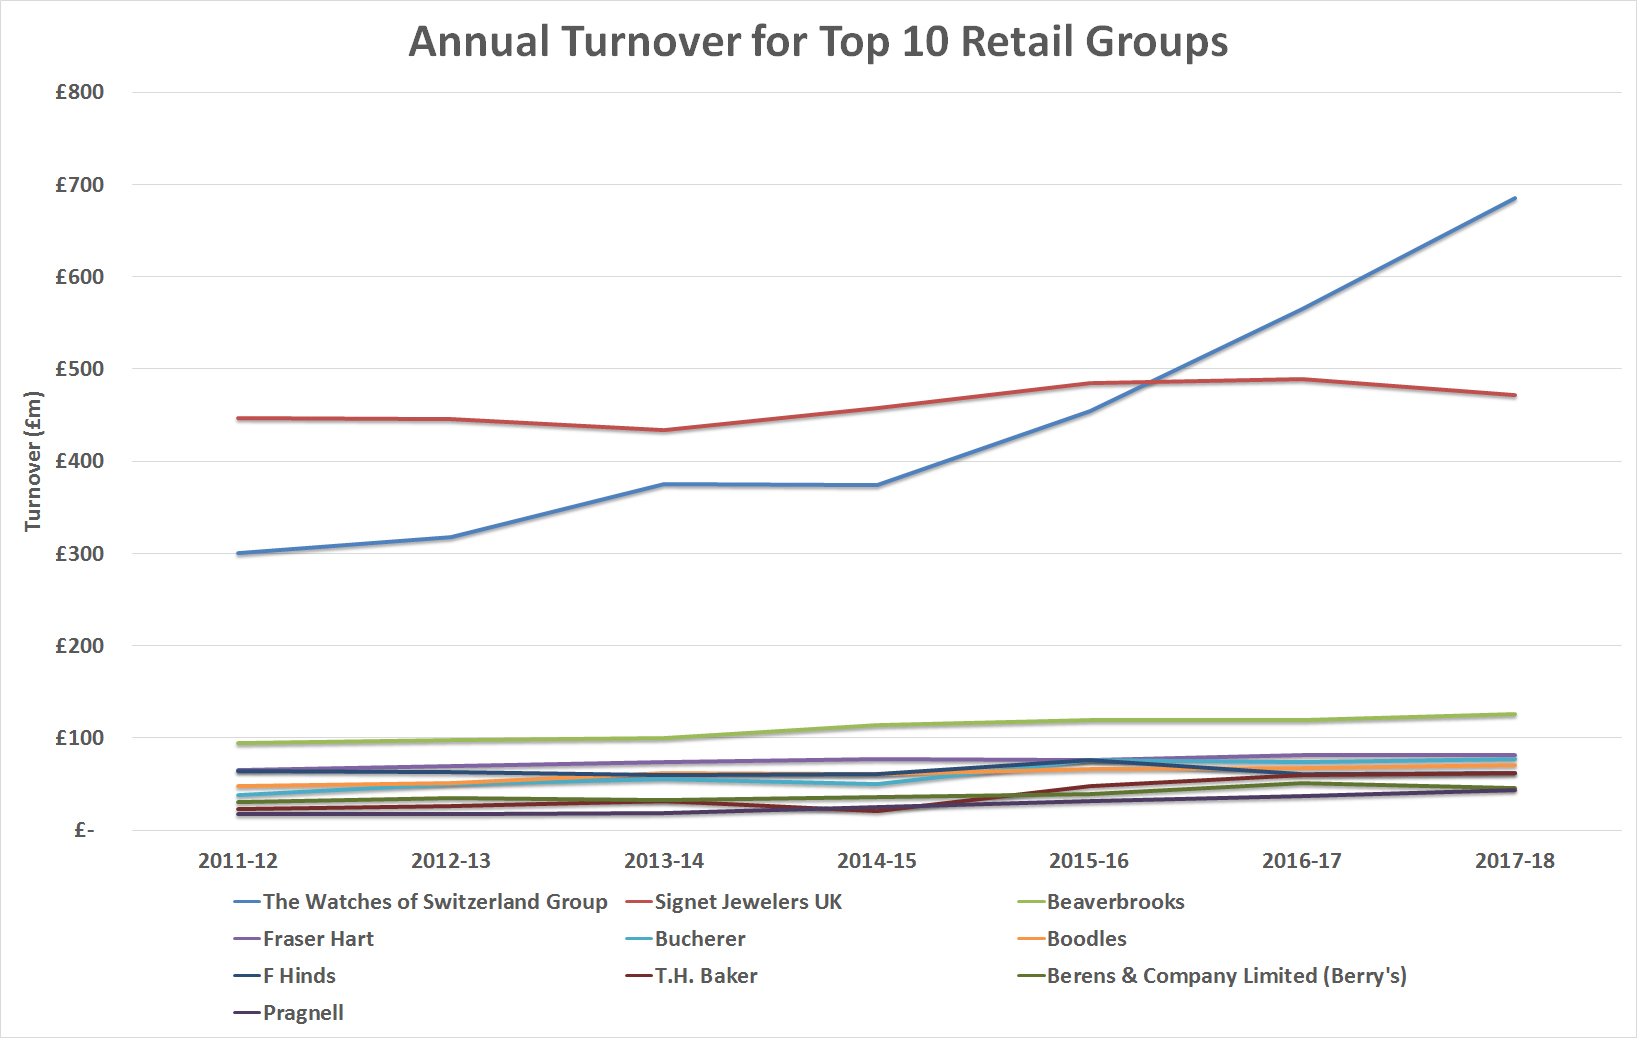 Top 10 retailers growth